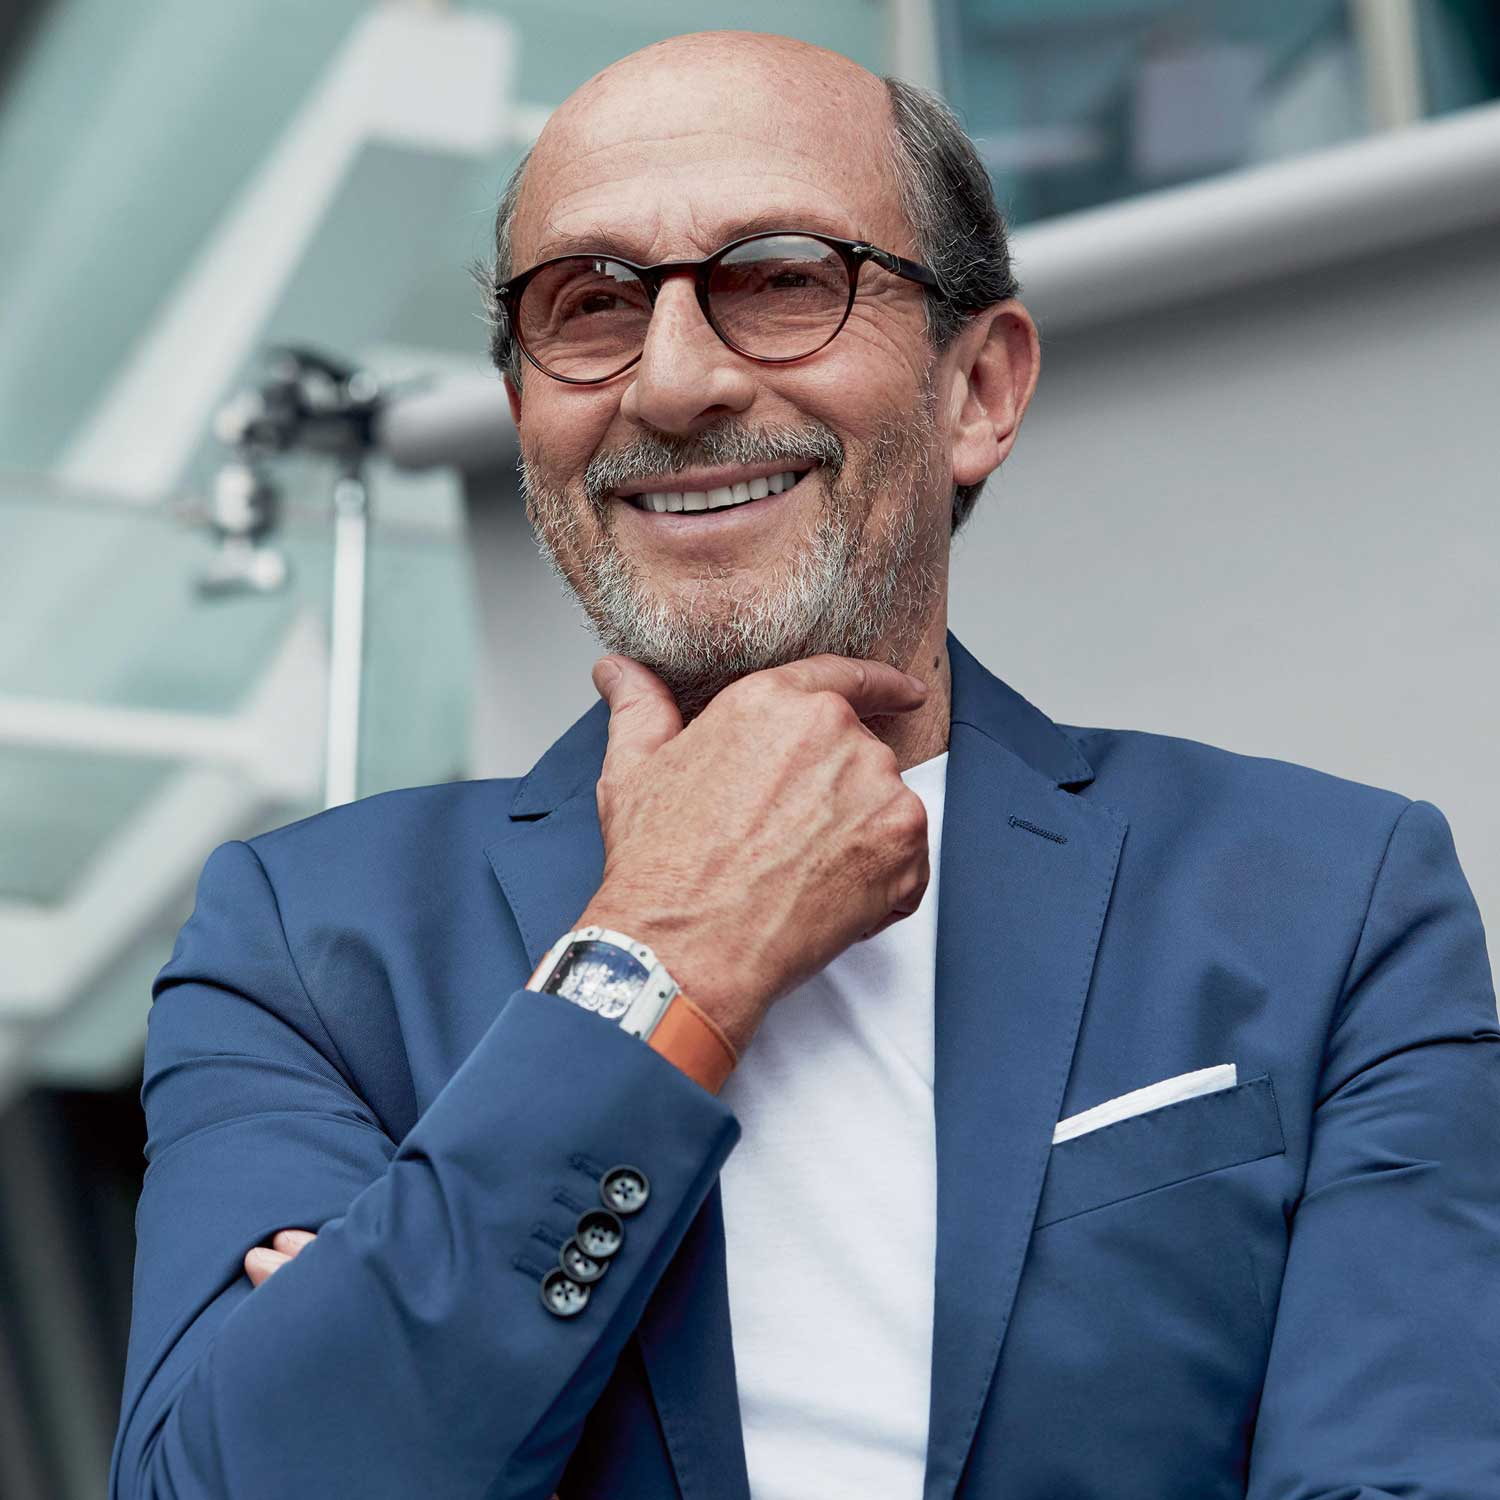 Richard Mille, juggernaut and founder of Richard Mille